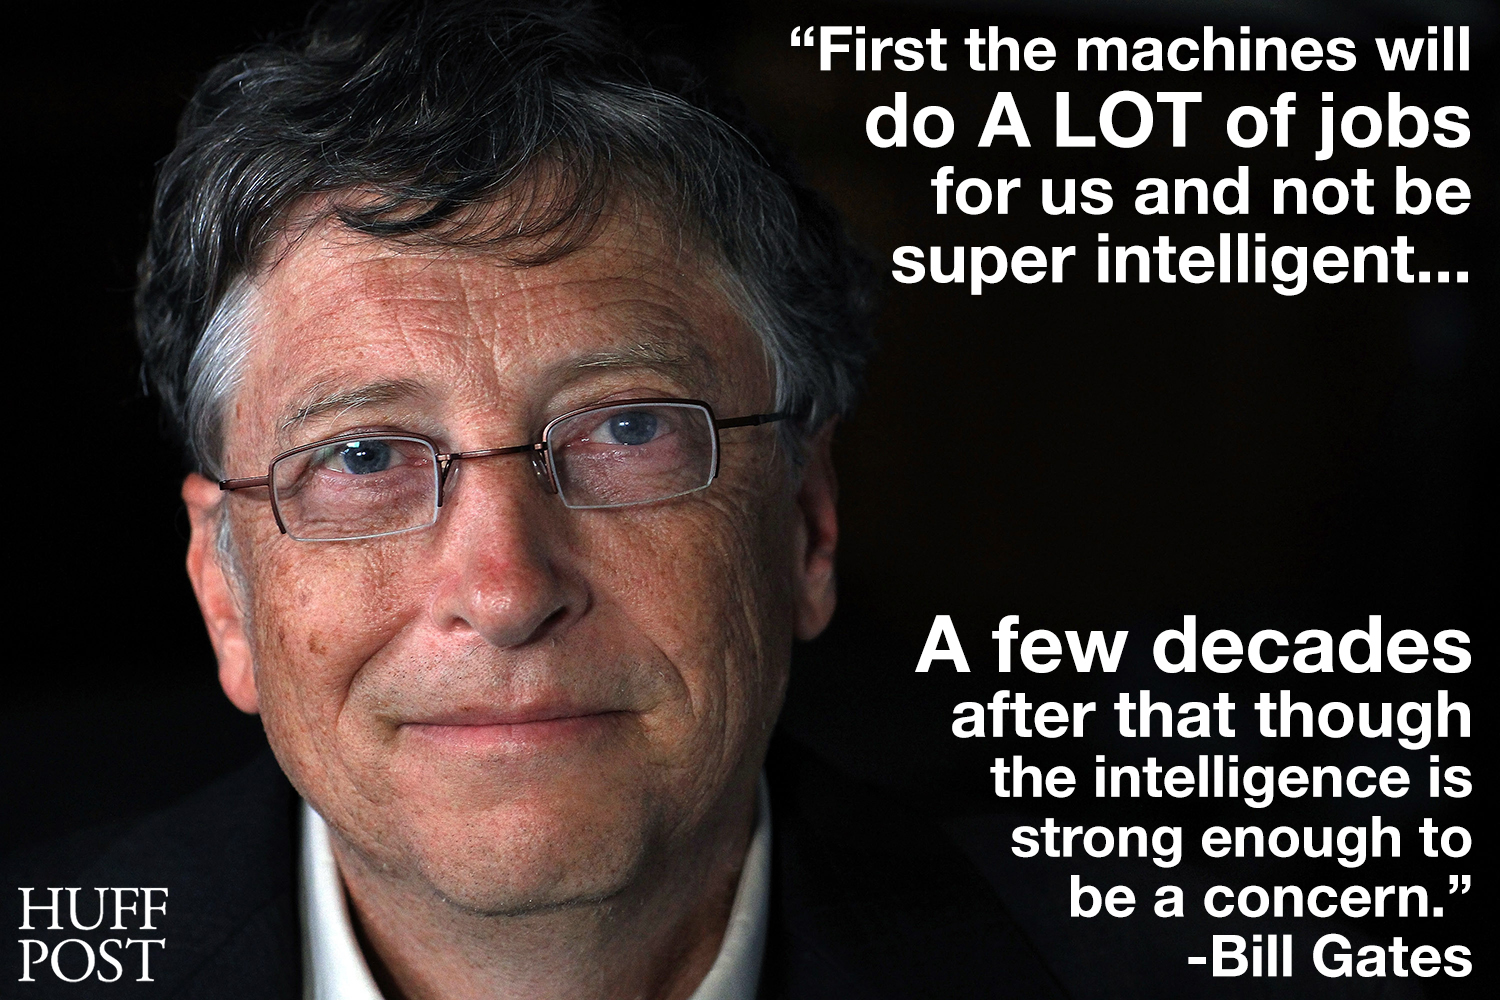 Artificial Intelligence Democracy Bill Gates Algorithms Code Threats Machine Learning